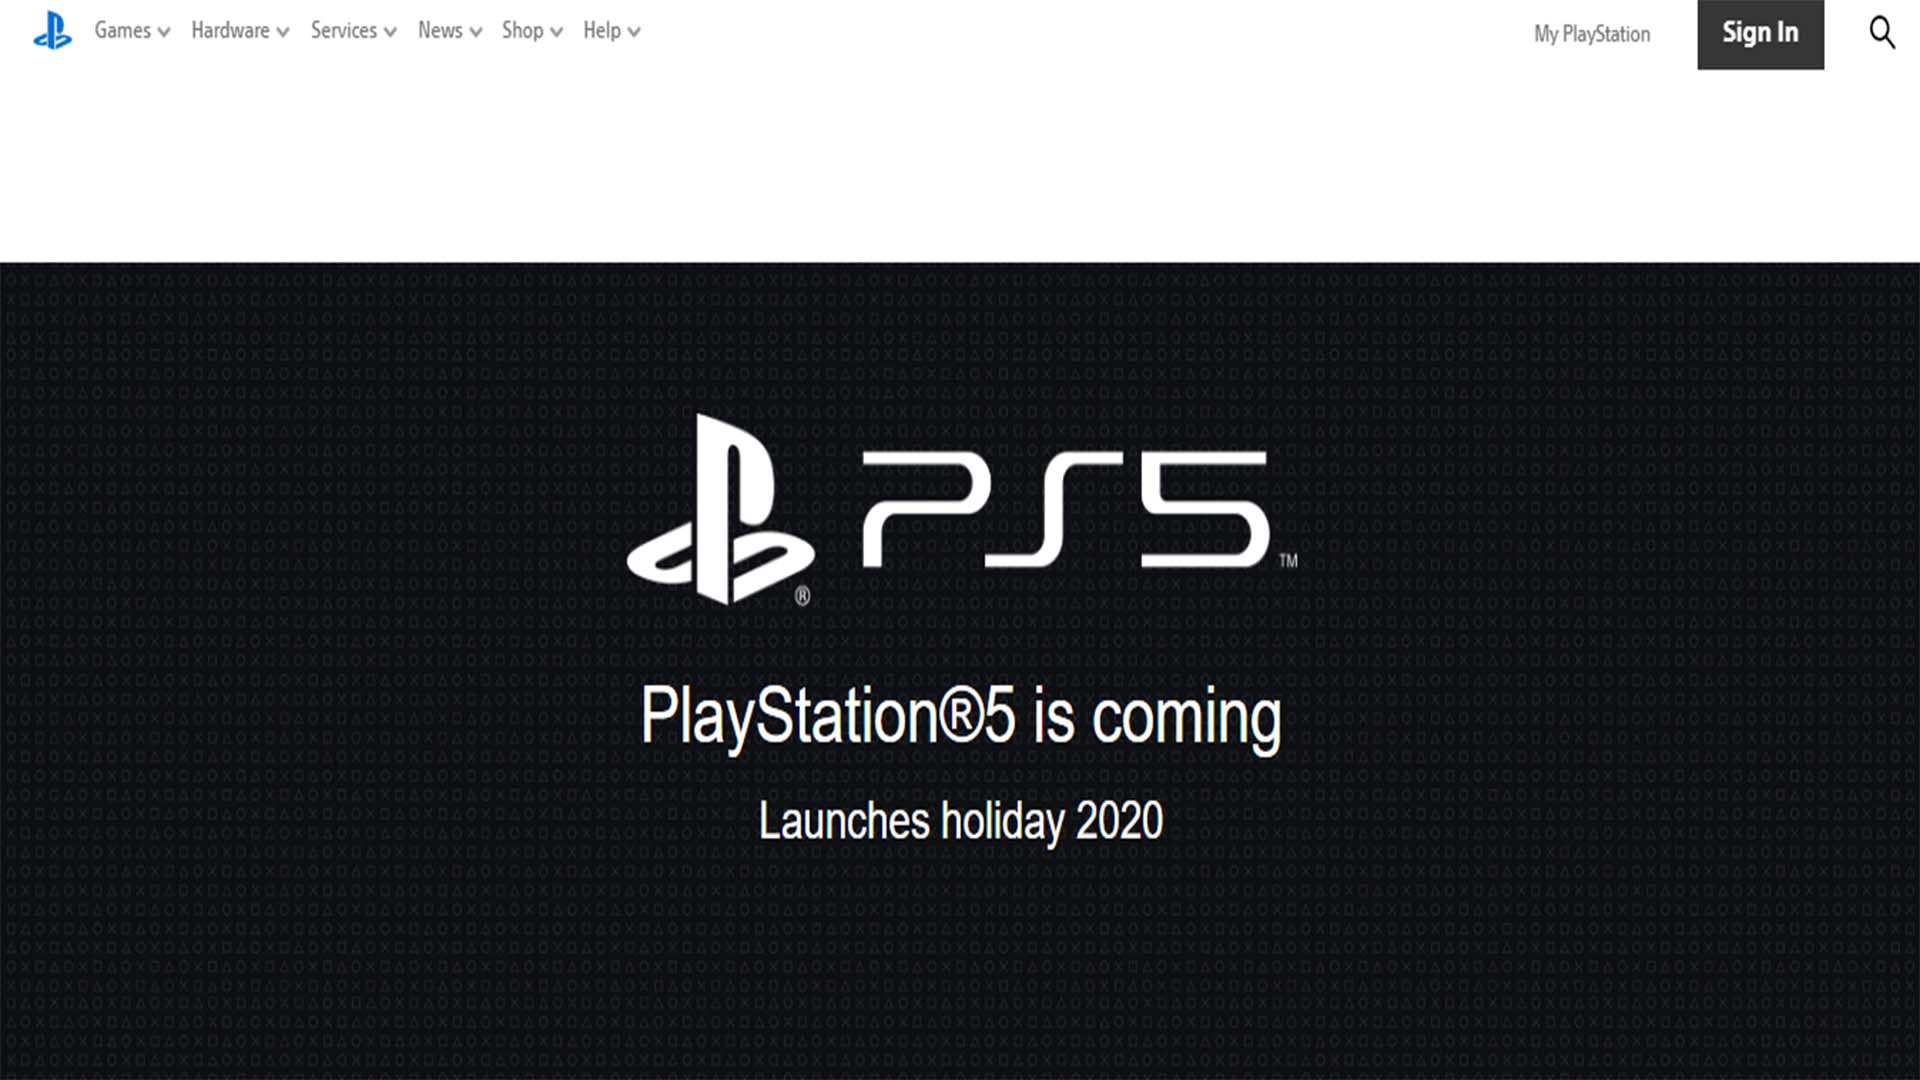 sony confirm playstation 5 date